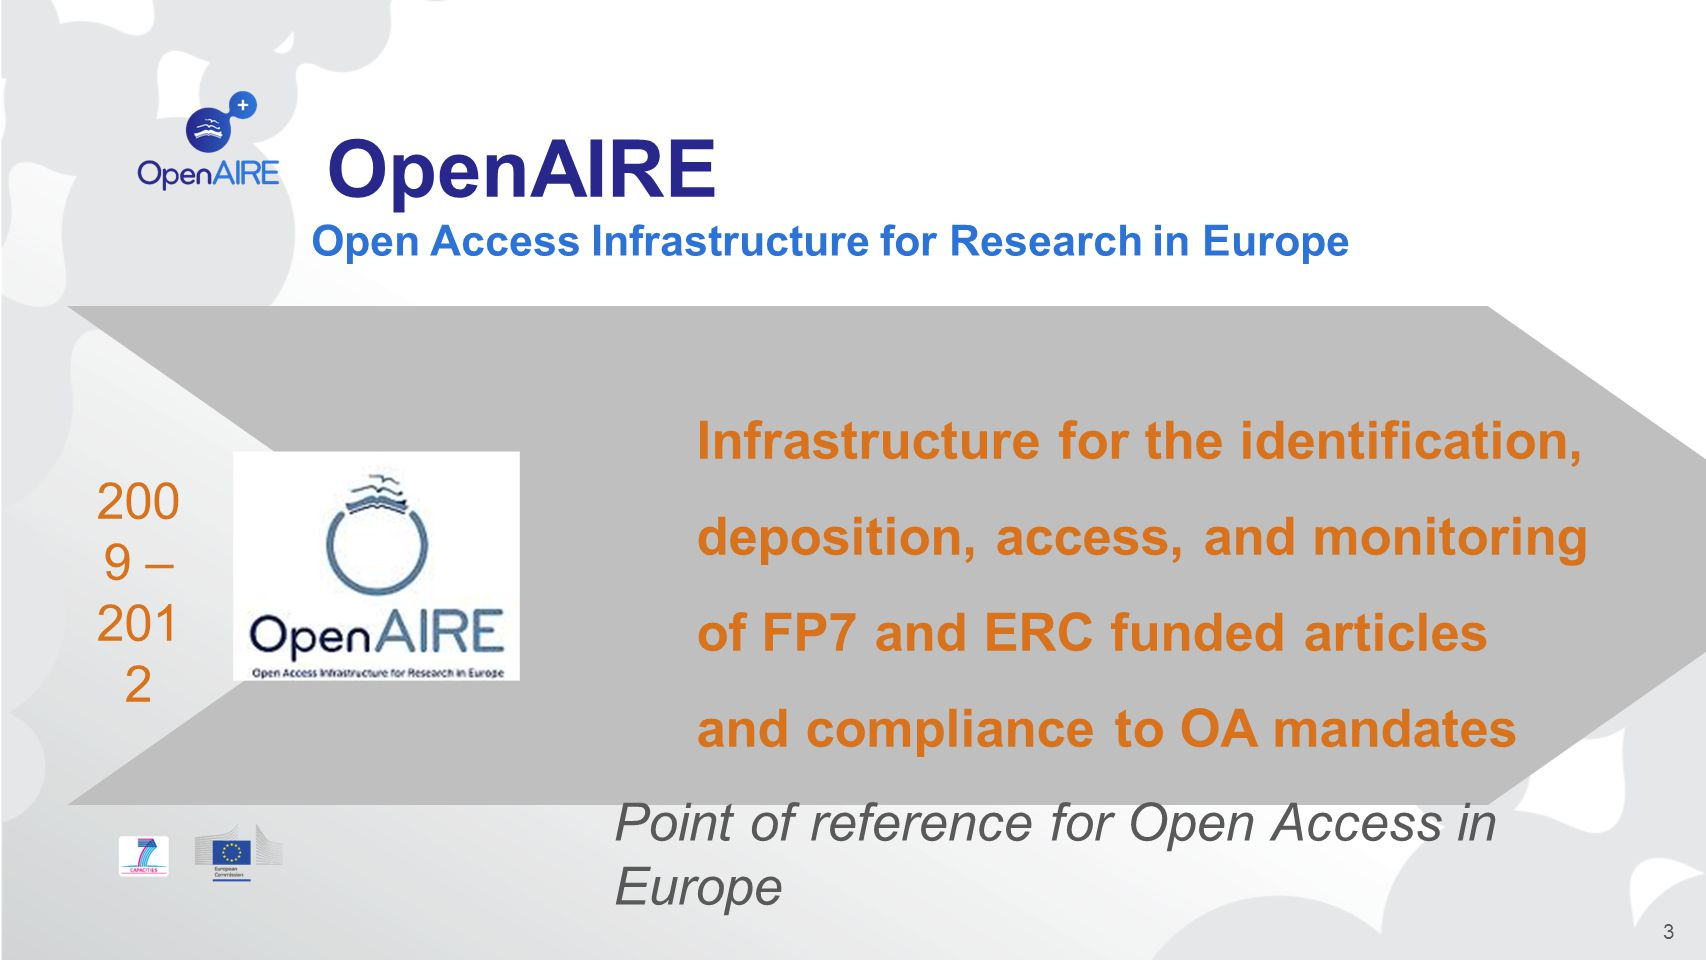 OpenAIRE 3 Infrastructure for the identification, deposition, access, and monitoring of FP7 and ERC funded articles and compliance to OA mandates 200 9 – 201 2 Point of reference for Open Access in Europe Open Access Infrastructure for Research in Europe